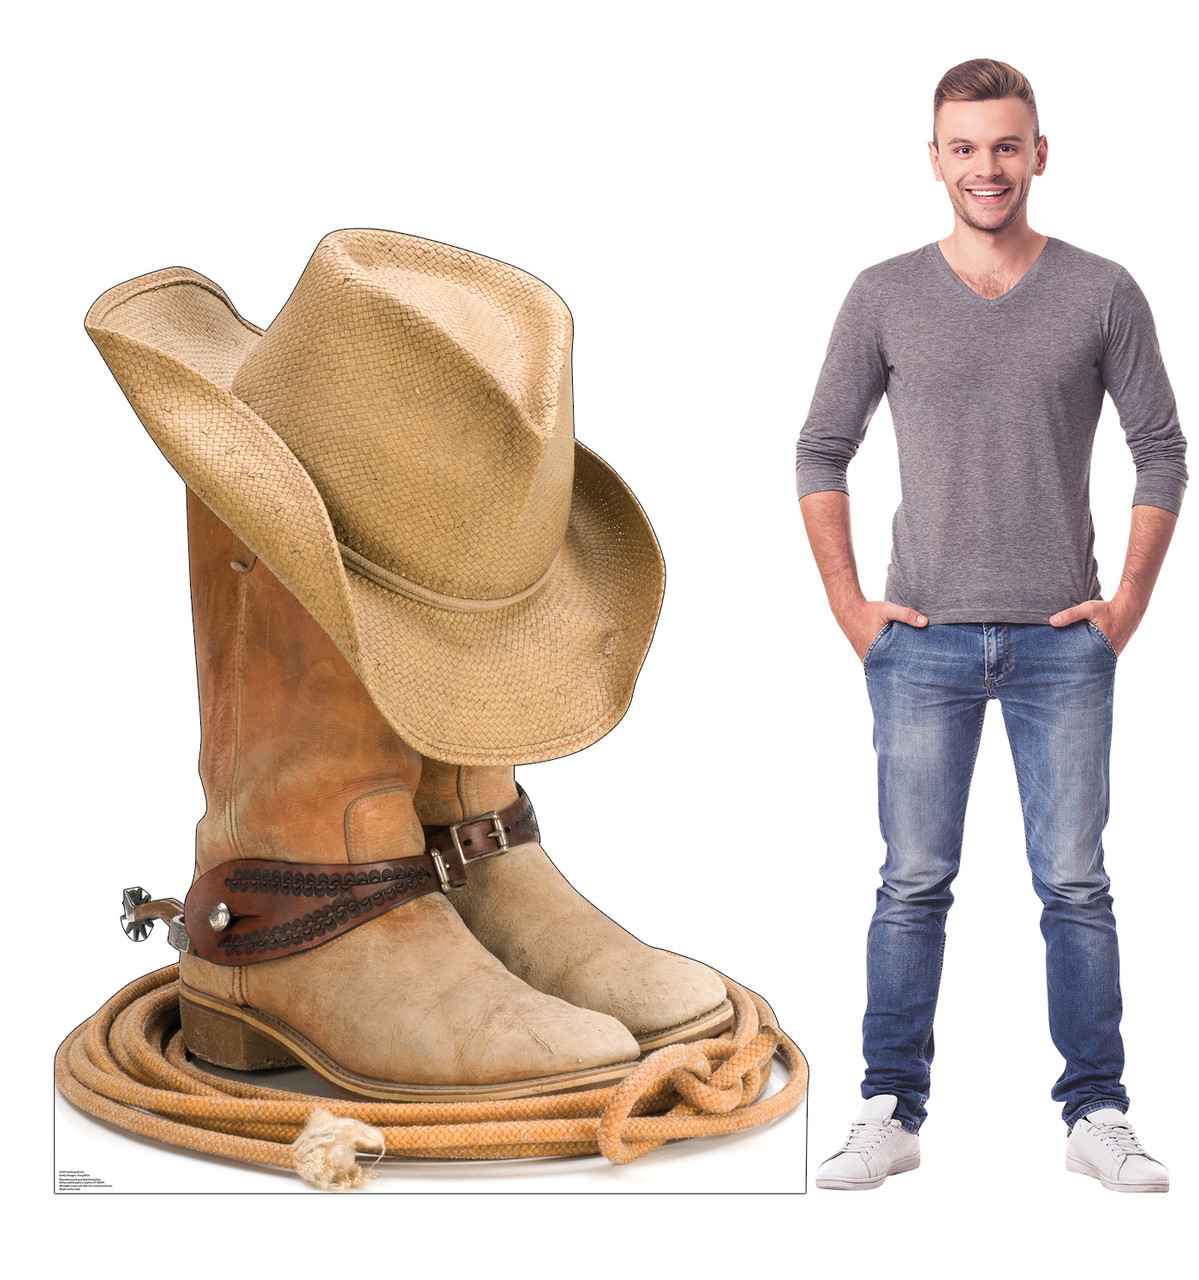 Life-size cardboard standee of Cowboy Boots Lifesize